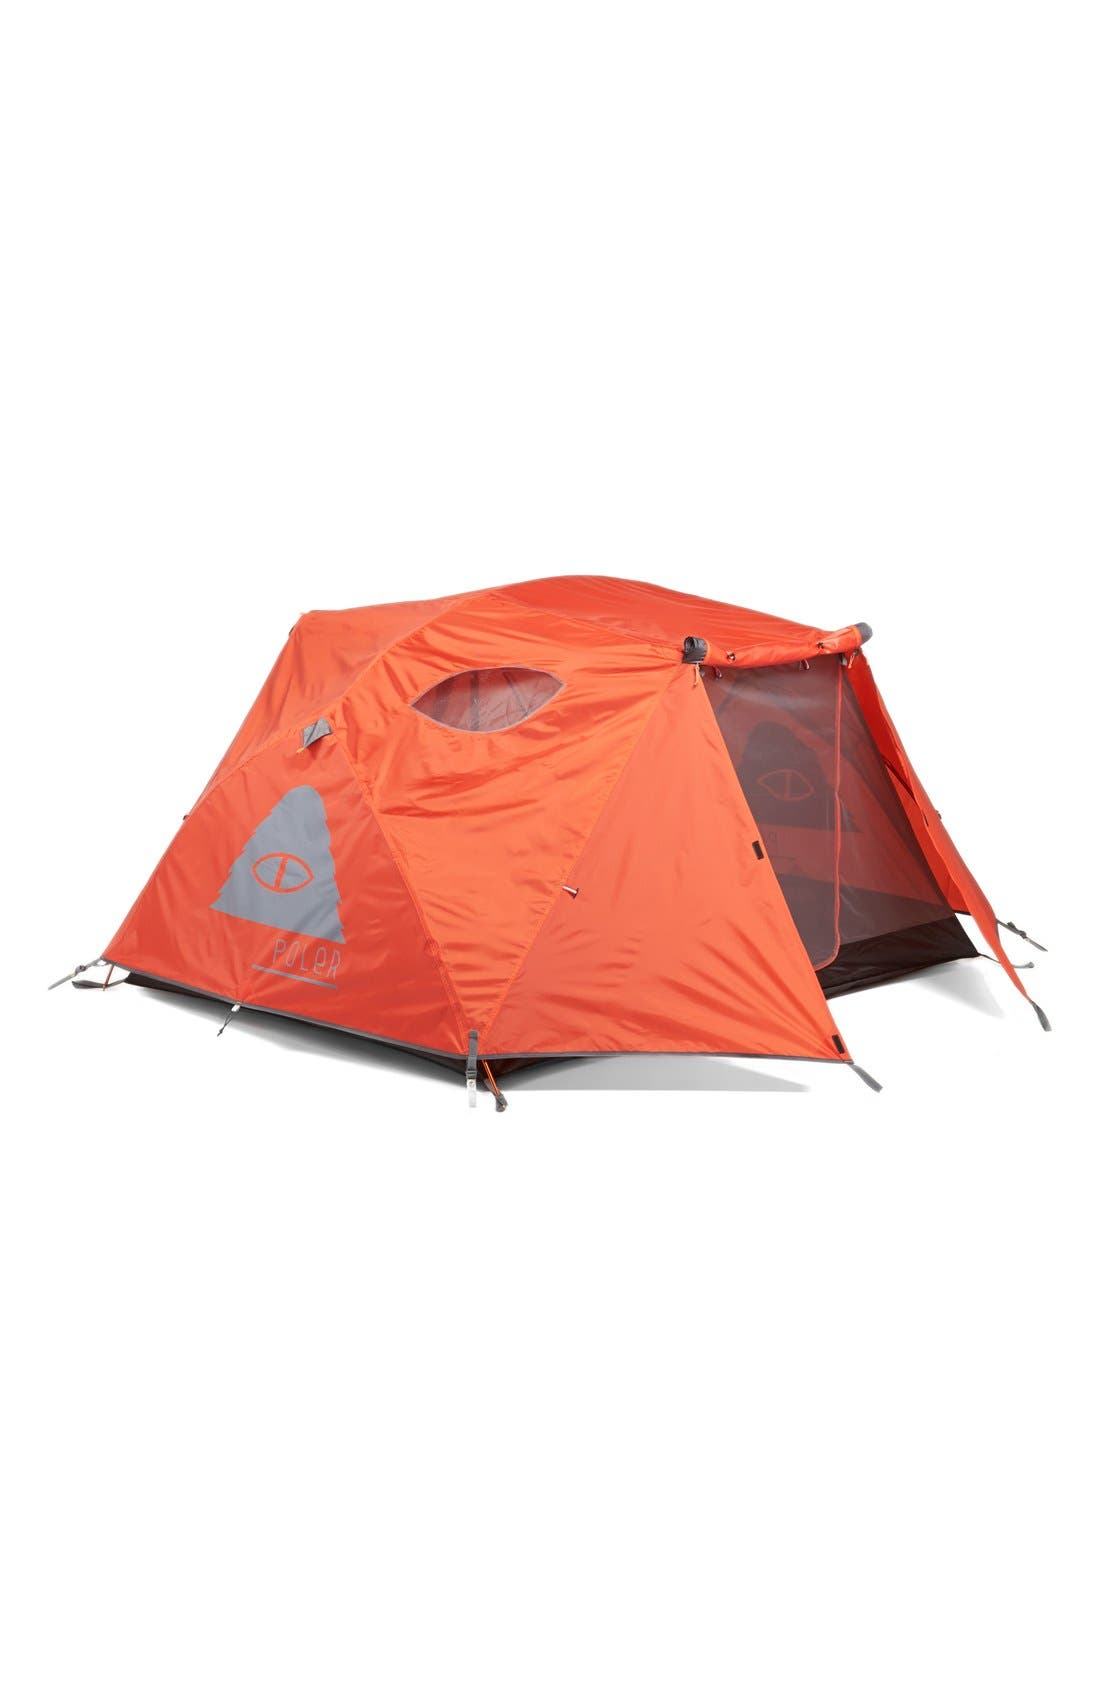 Alternate Image 1 Selected - Poler Two-Person Tent & Waterproof Rain Fly